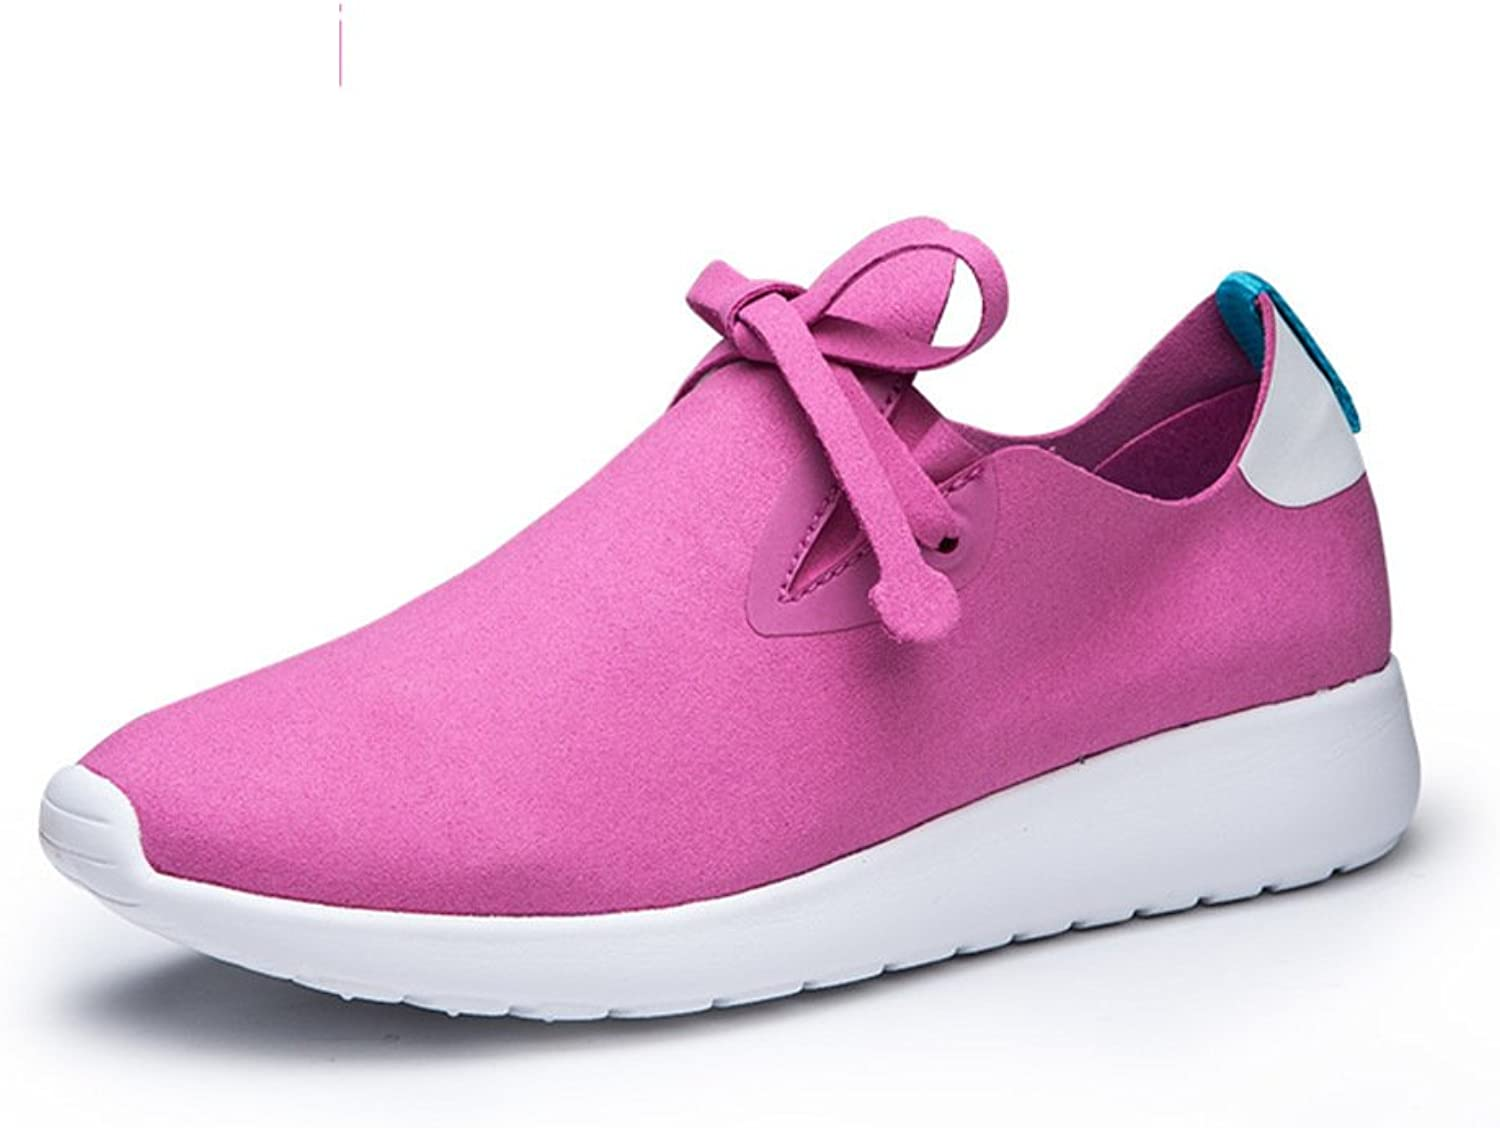 WLJSLLZYQ Fashion Strap Casual shoes Student shoes Women shoes Business Space shoes Super Lightweight Running shoes